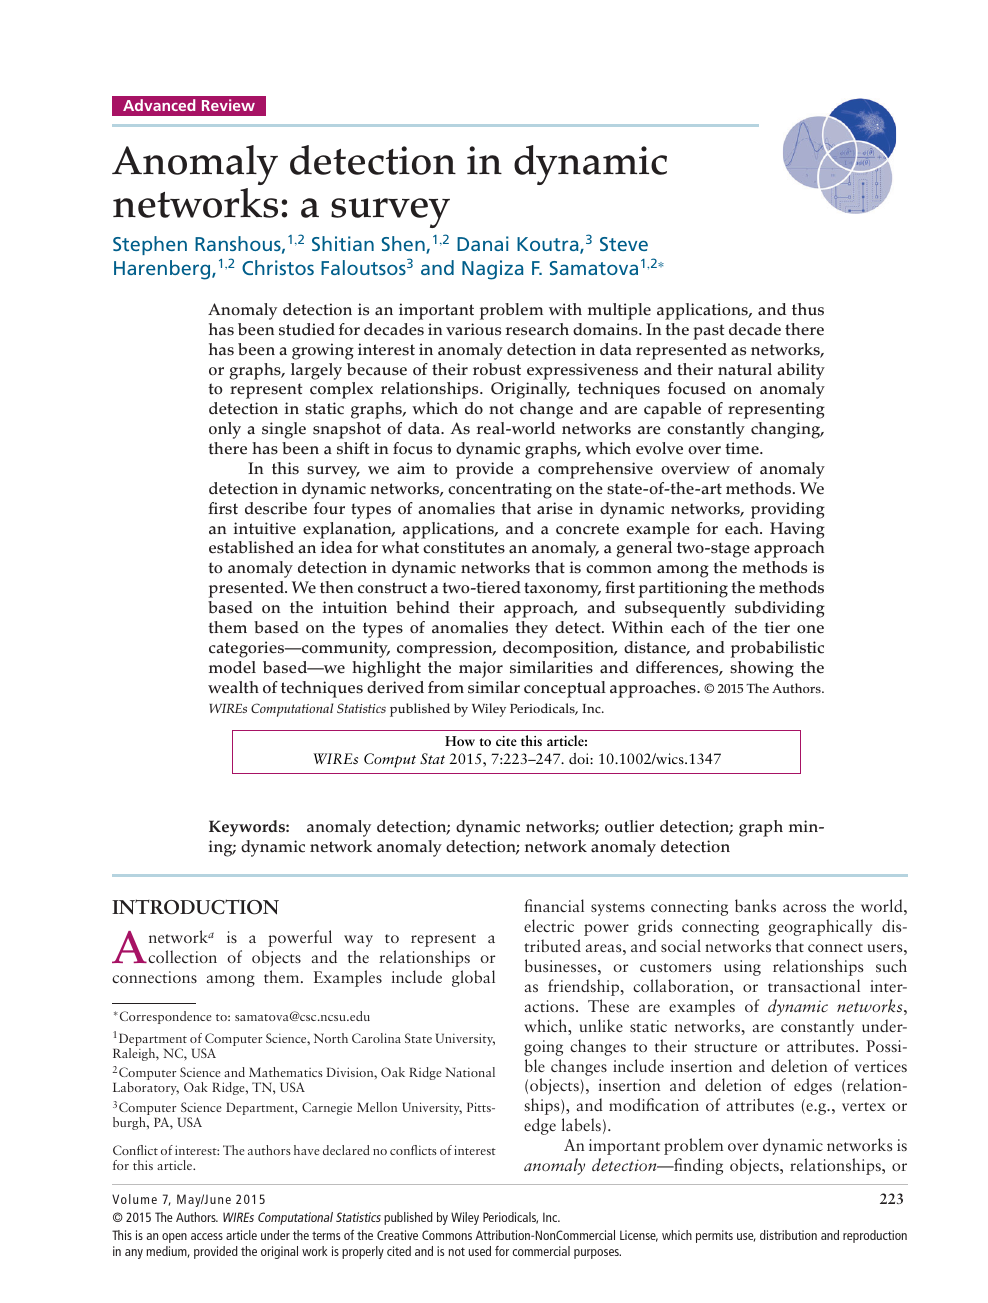 Anomaly detection in dynamic networks: a survey – topic of